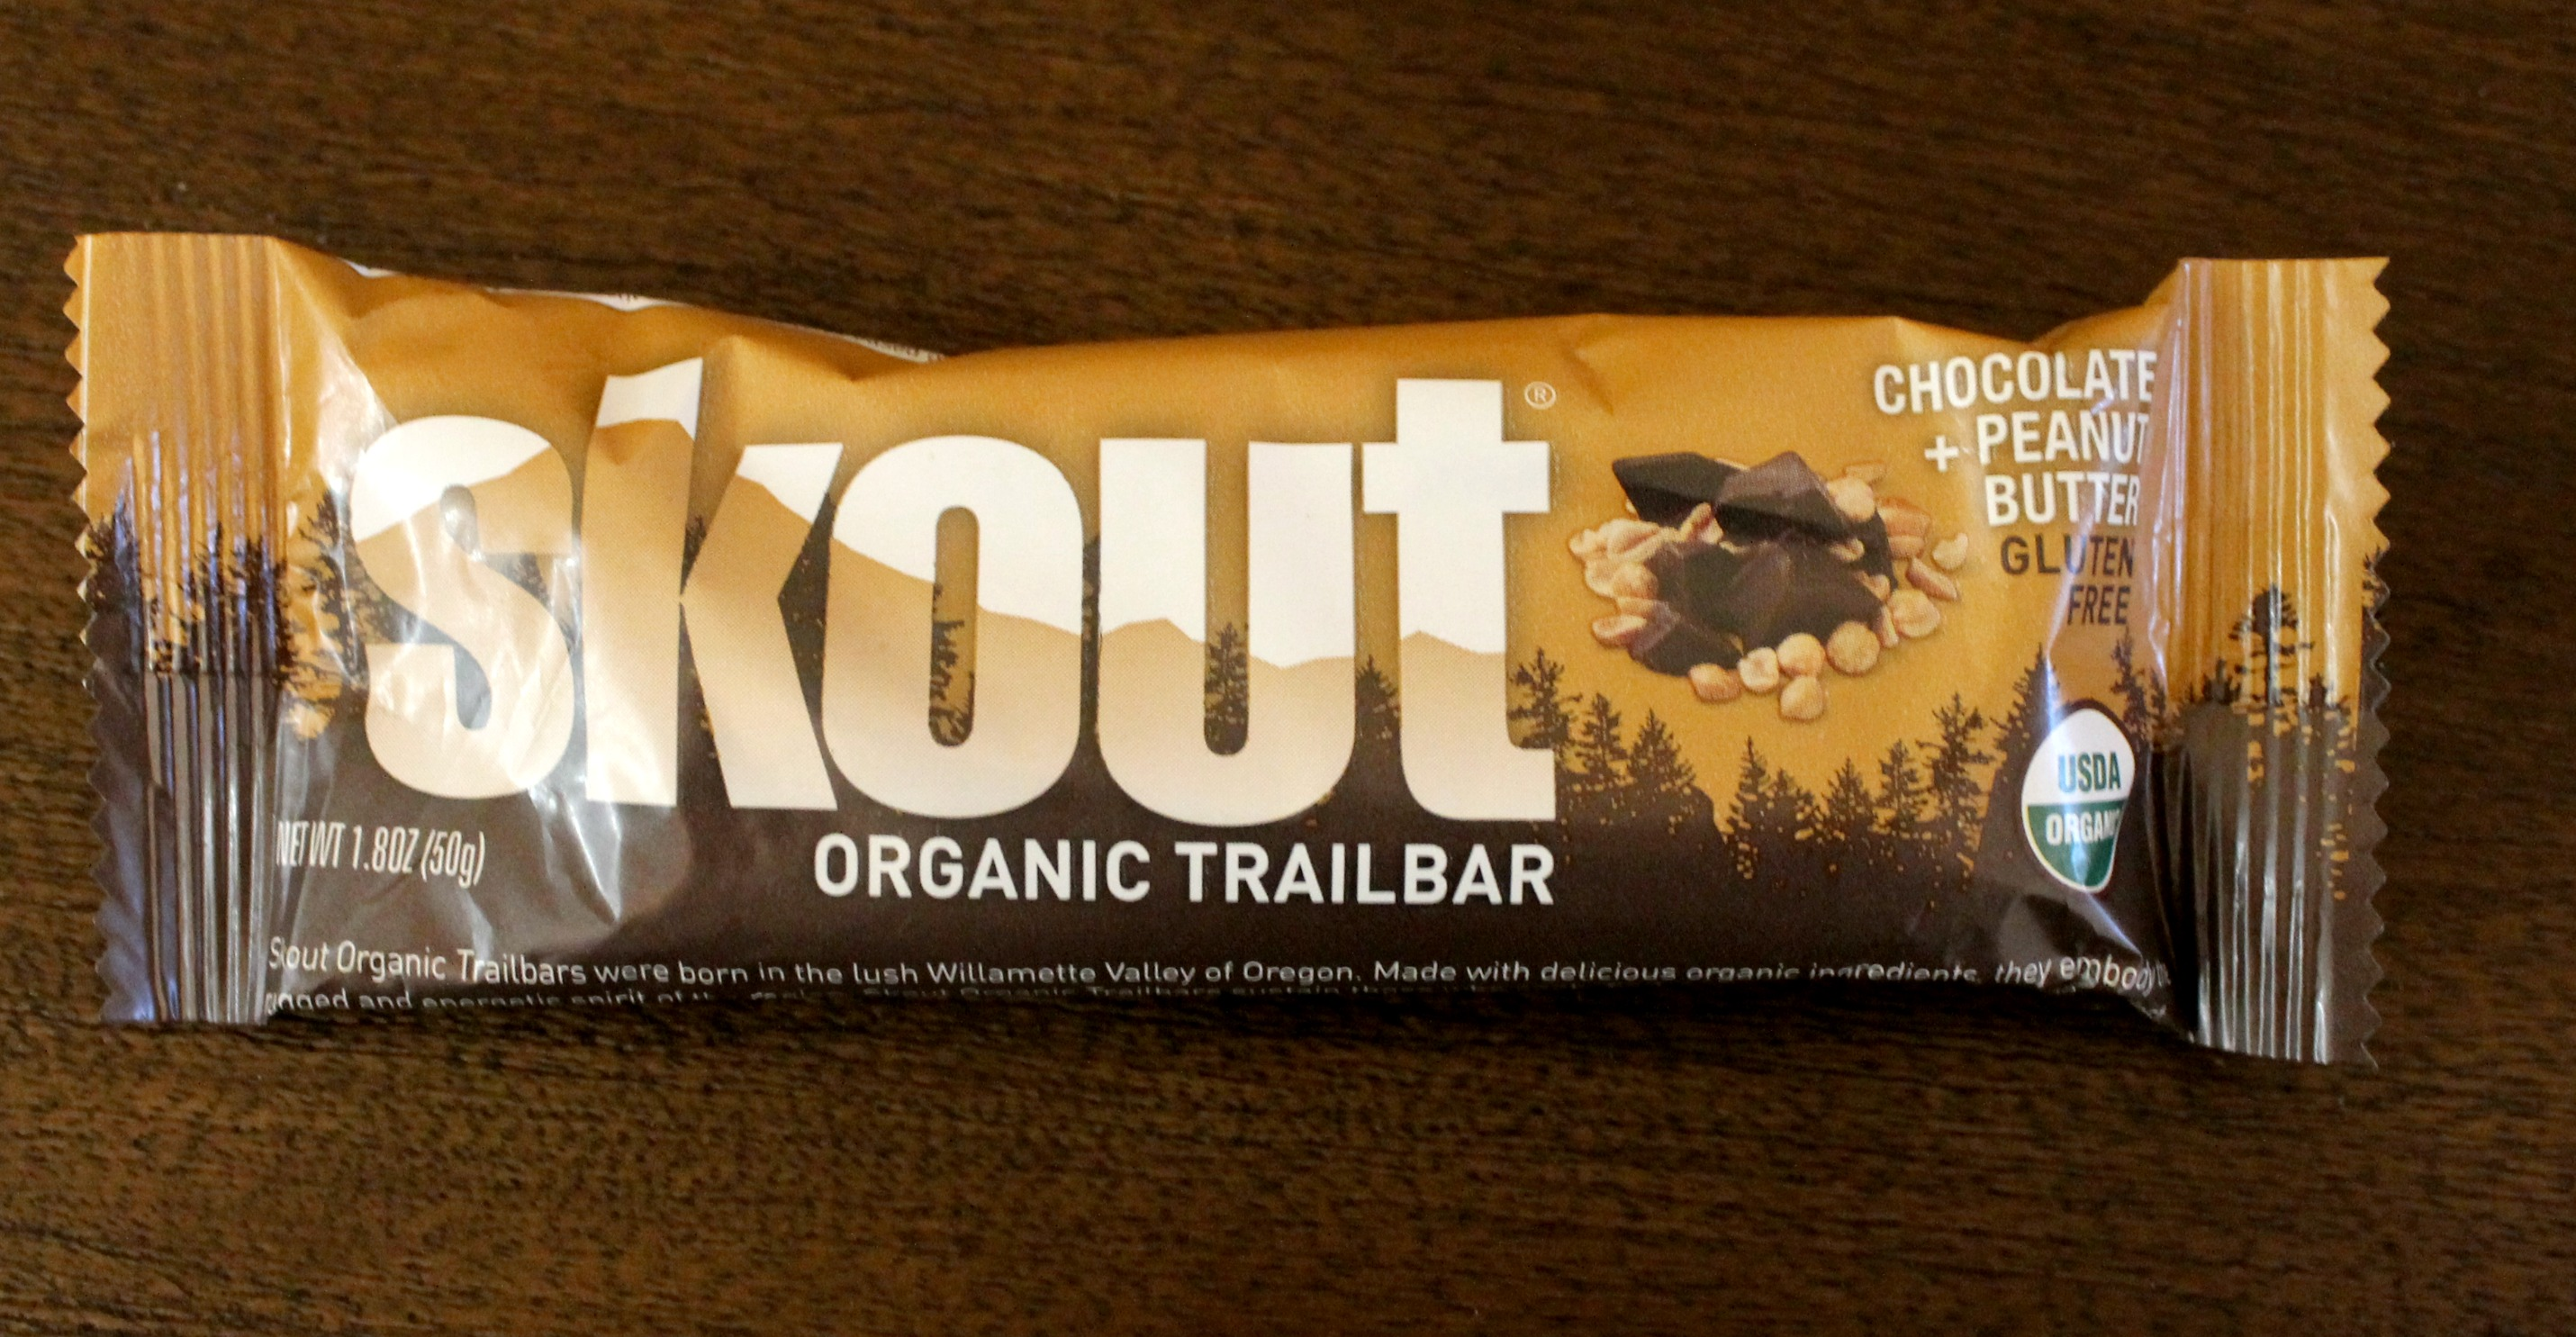 Skout Trailbars Chocolate Peanut BUtter